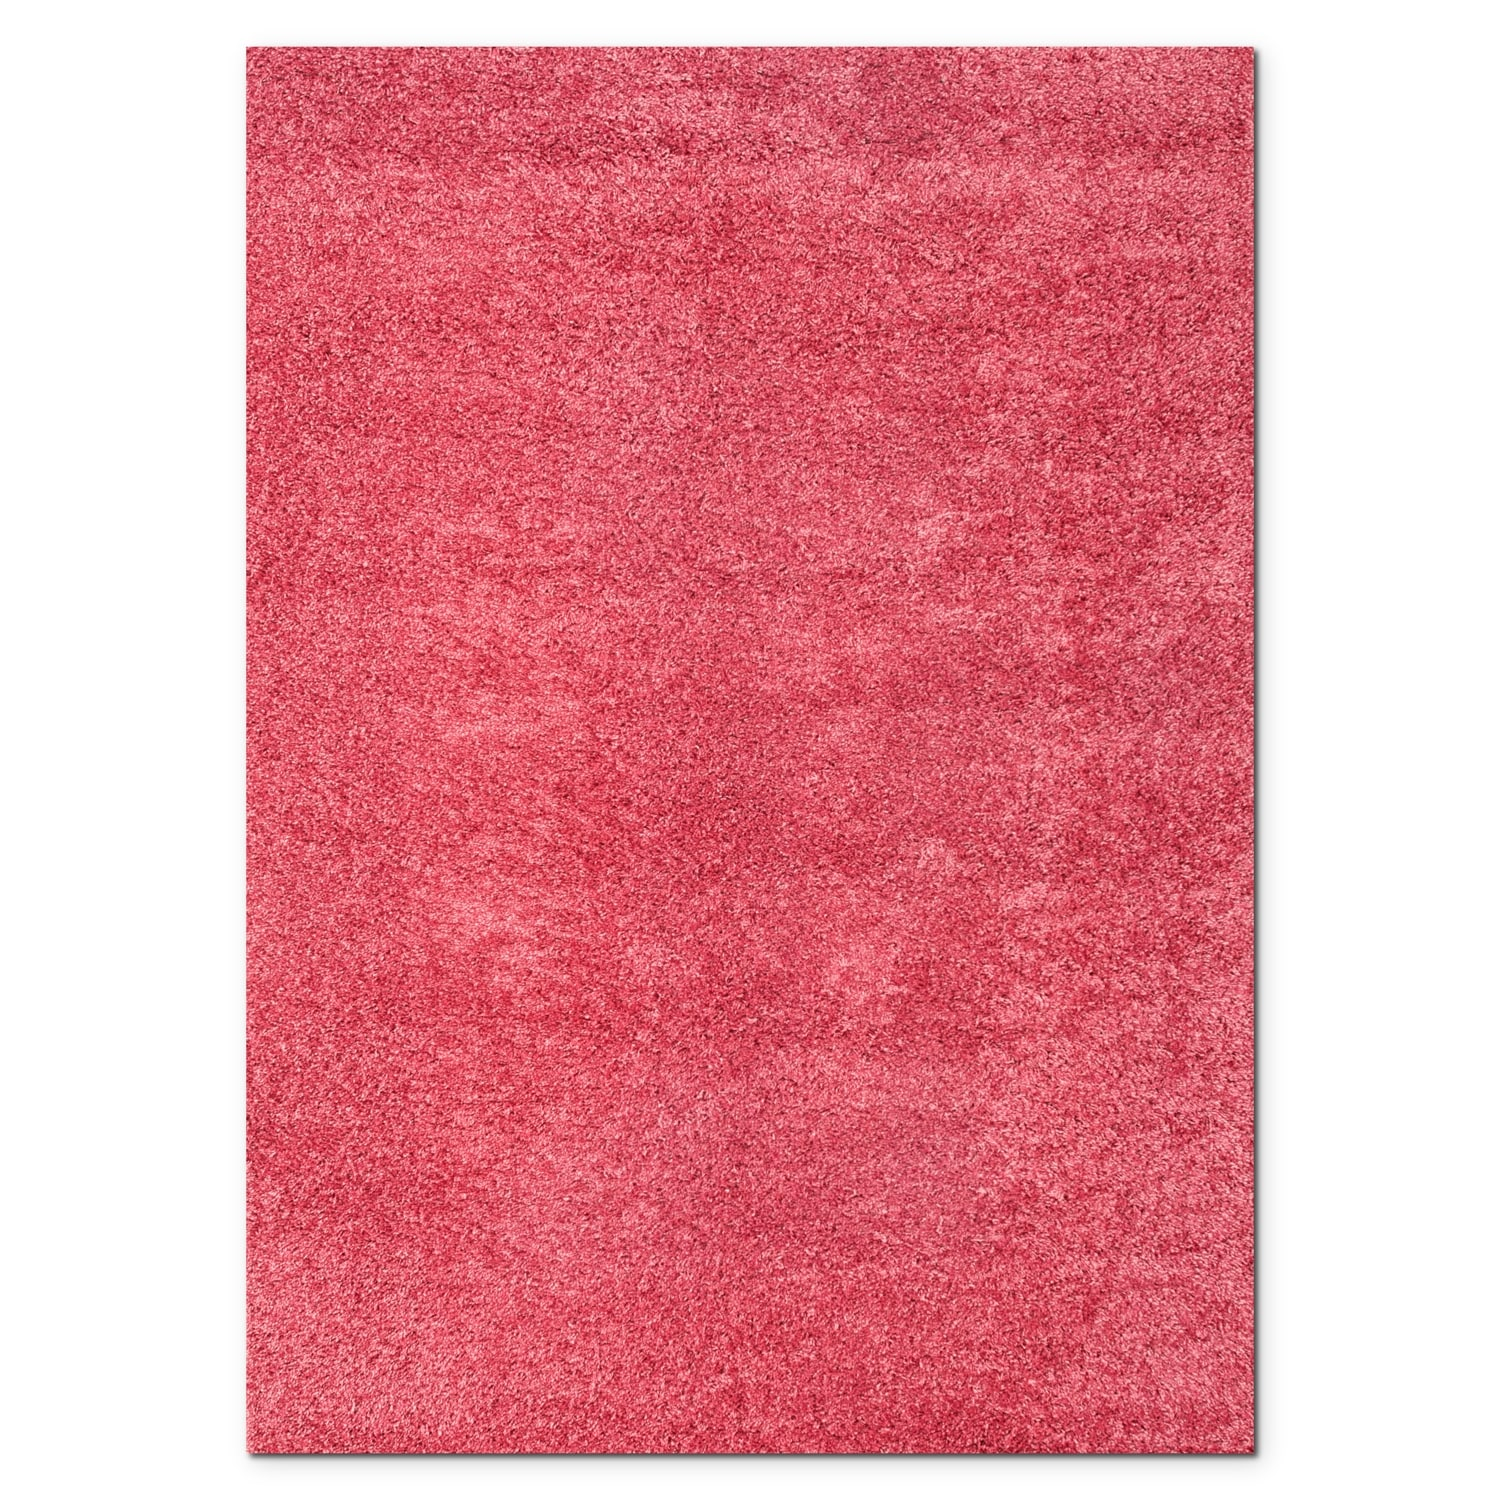 Rugs - Domino Pink Shag Area Rug (8' x 10')